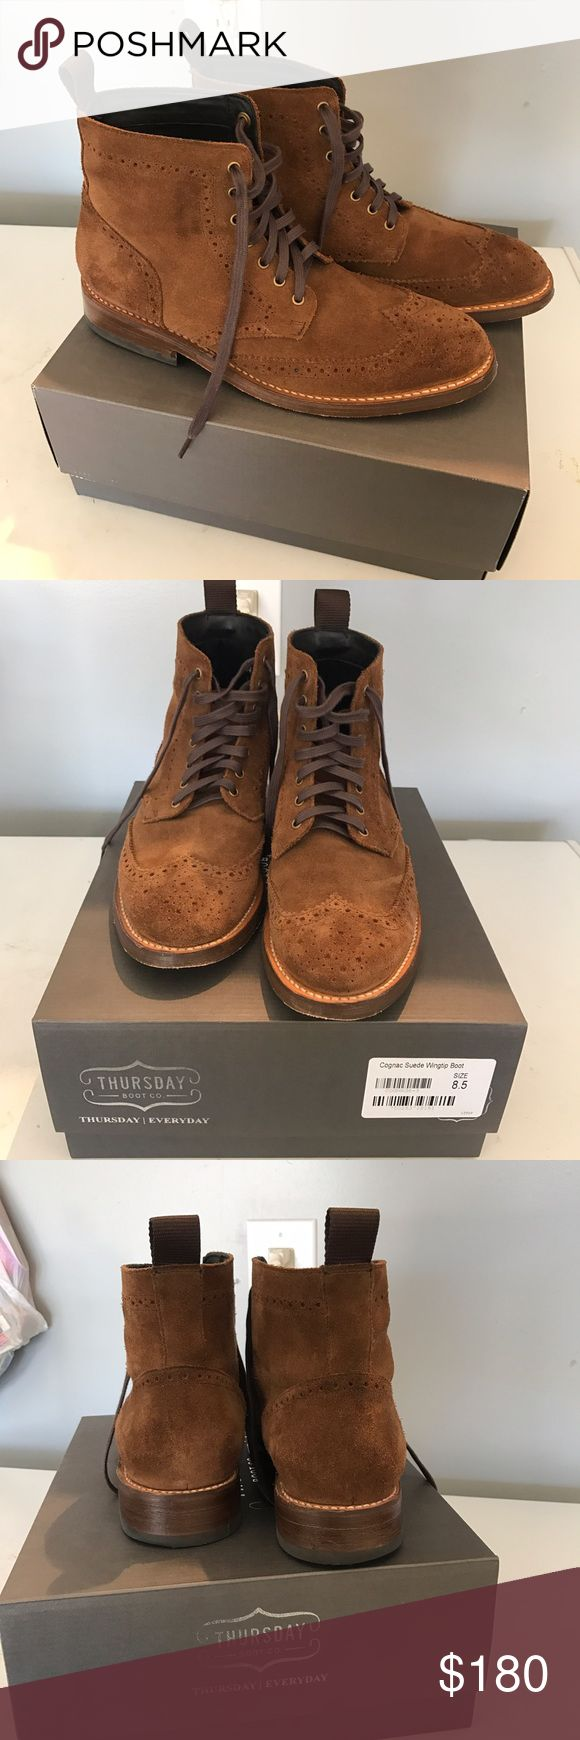 Wingtip boots | Cognac Suede Wingtip boots | Cognac Suede.  I worn about few times. Still in very good condition 8.5/10. It list as $220 brand new on Thursday boots website. Thursday Boots Shoes Boots